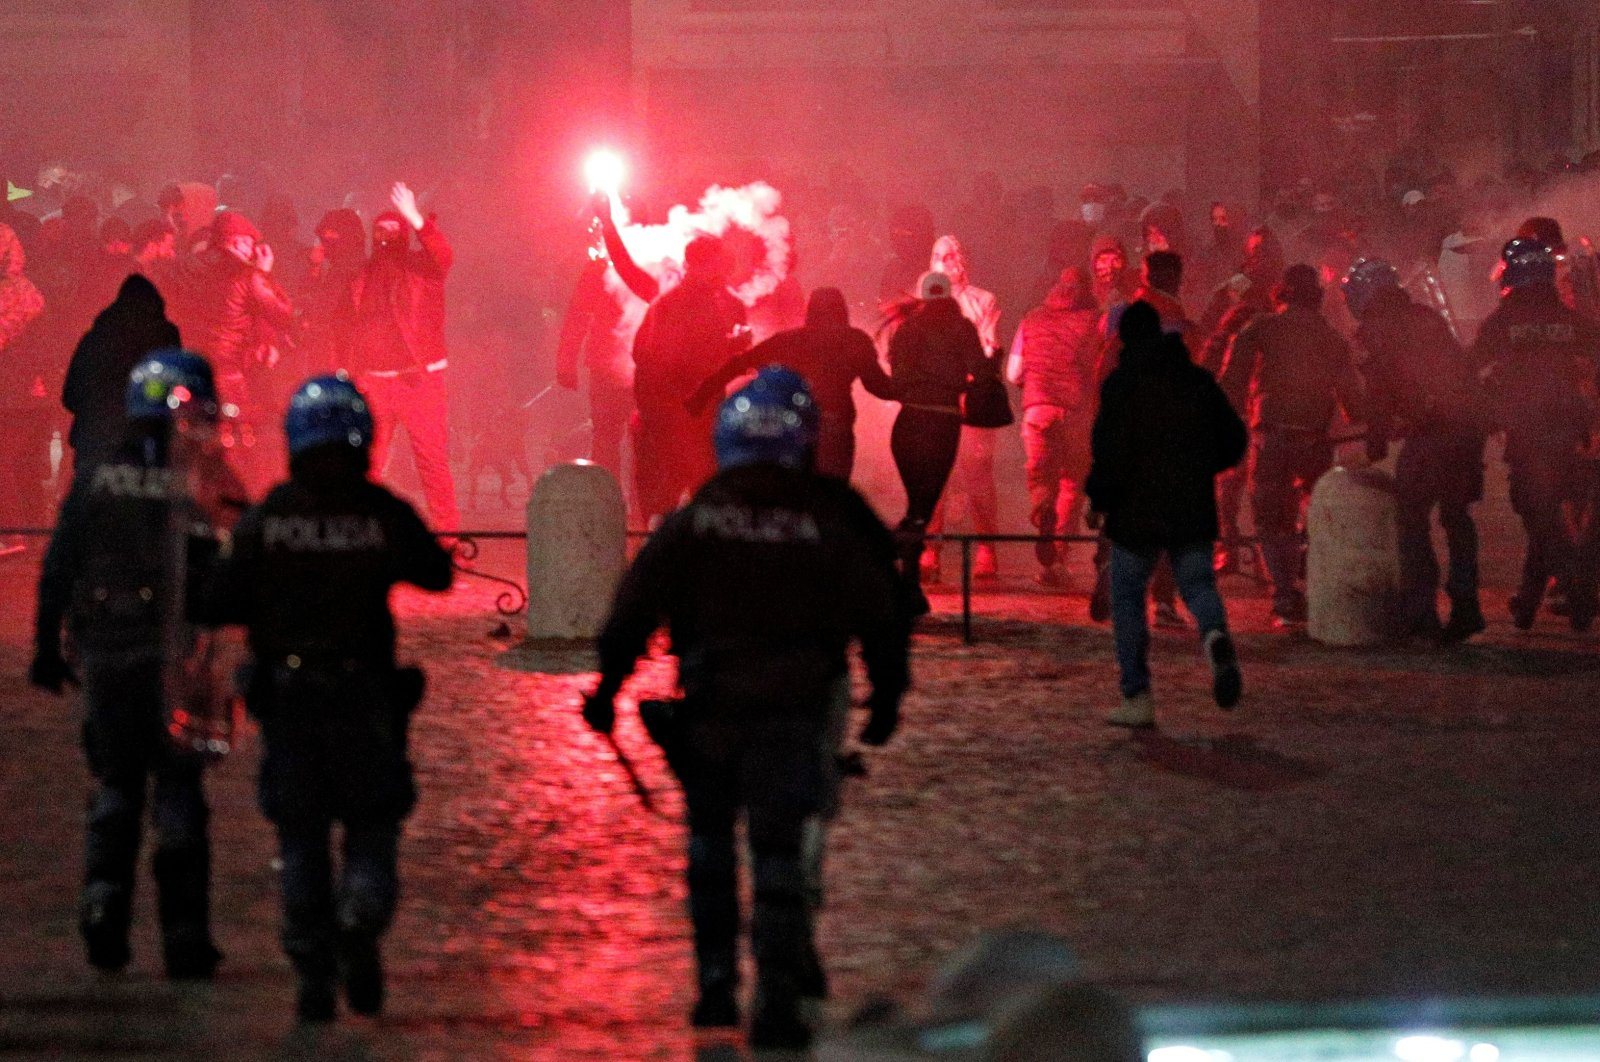 Demonstrators clash with police on Piazza del Popolo to protest restrictions, Rome, Italy, Oct. 24, 2020. (REUTERS Photo)